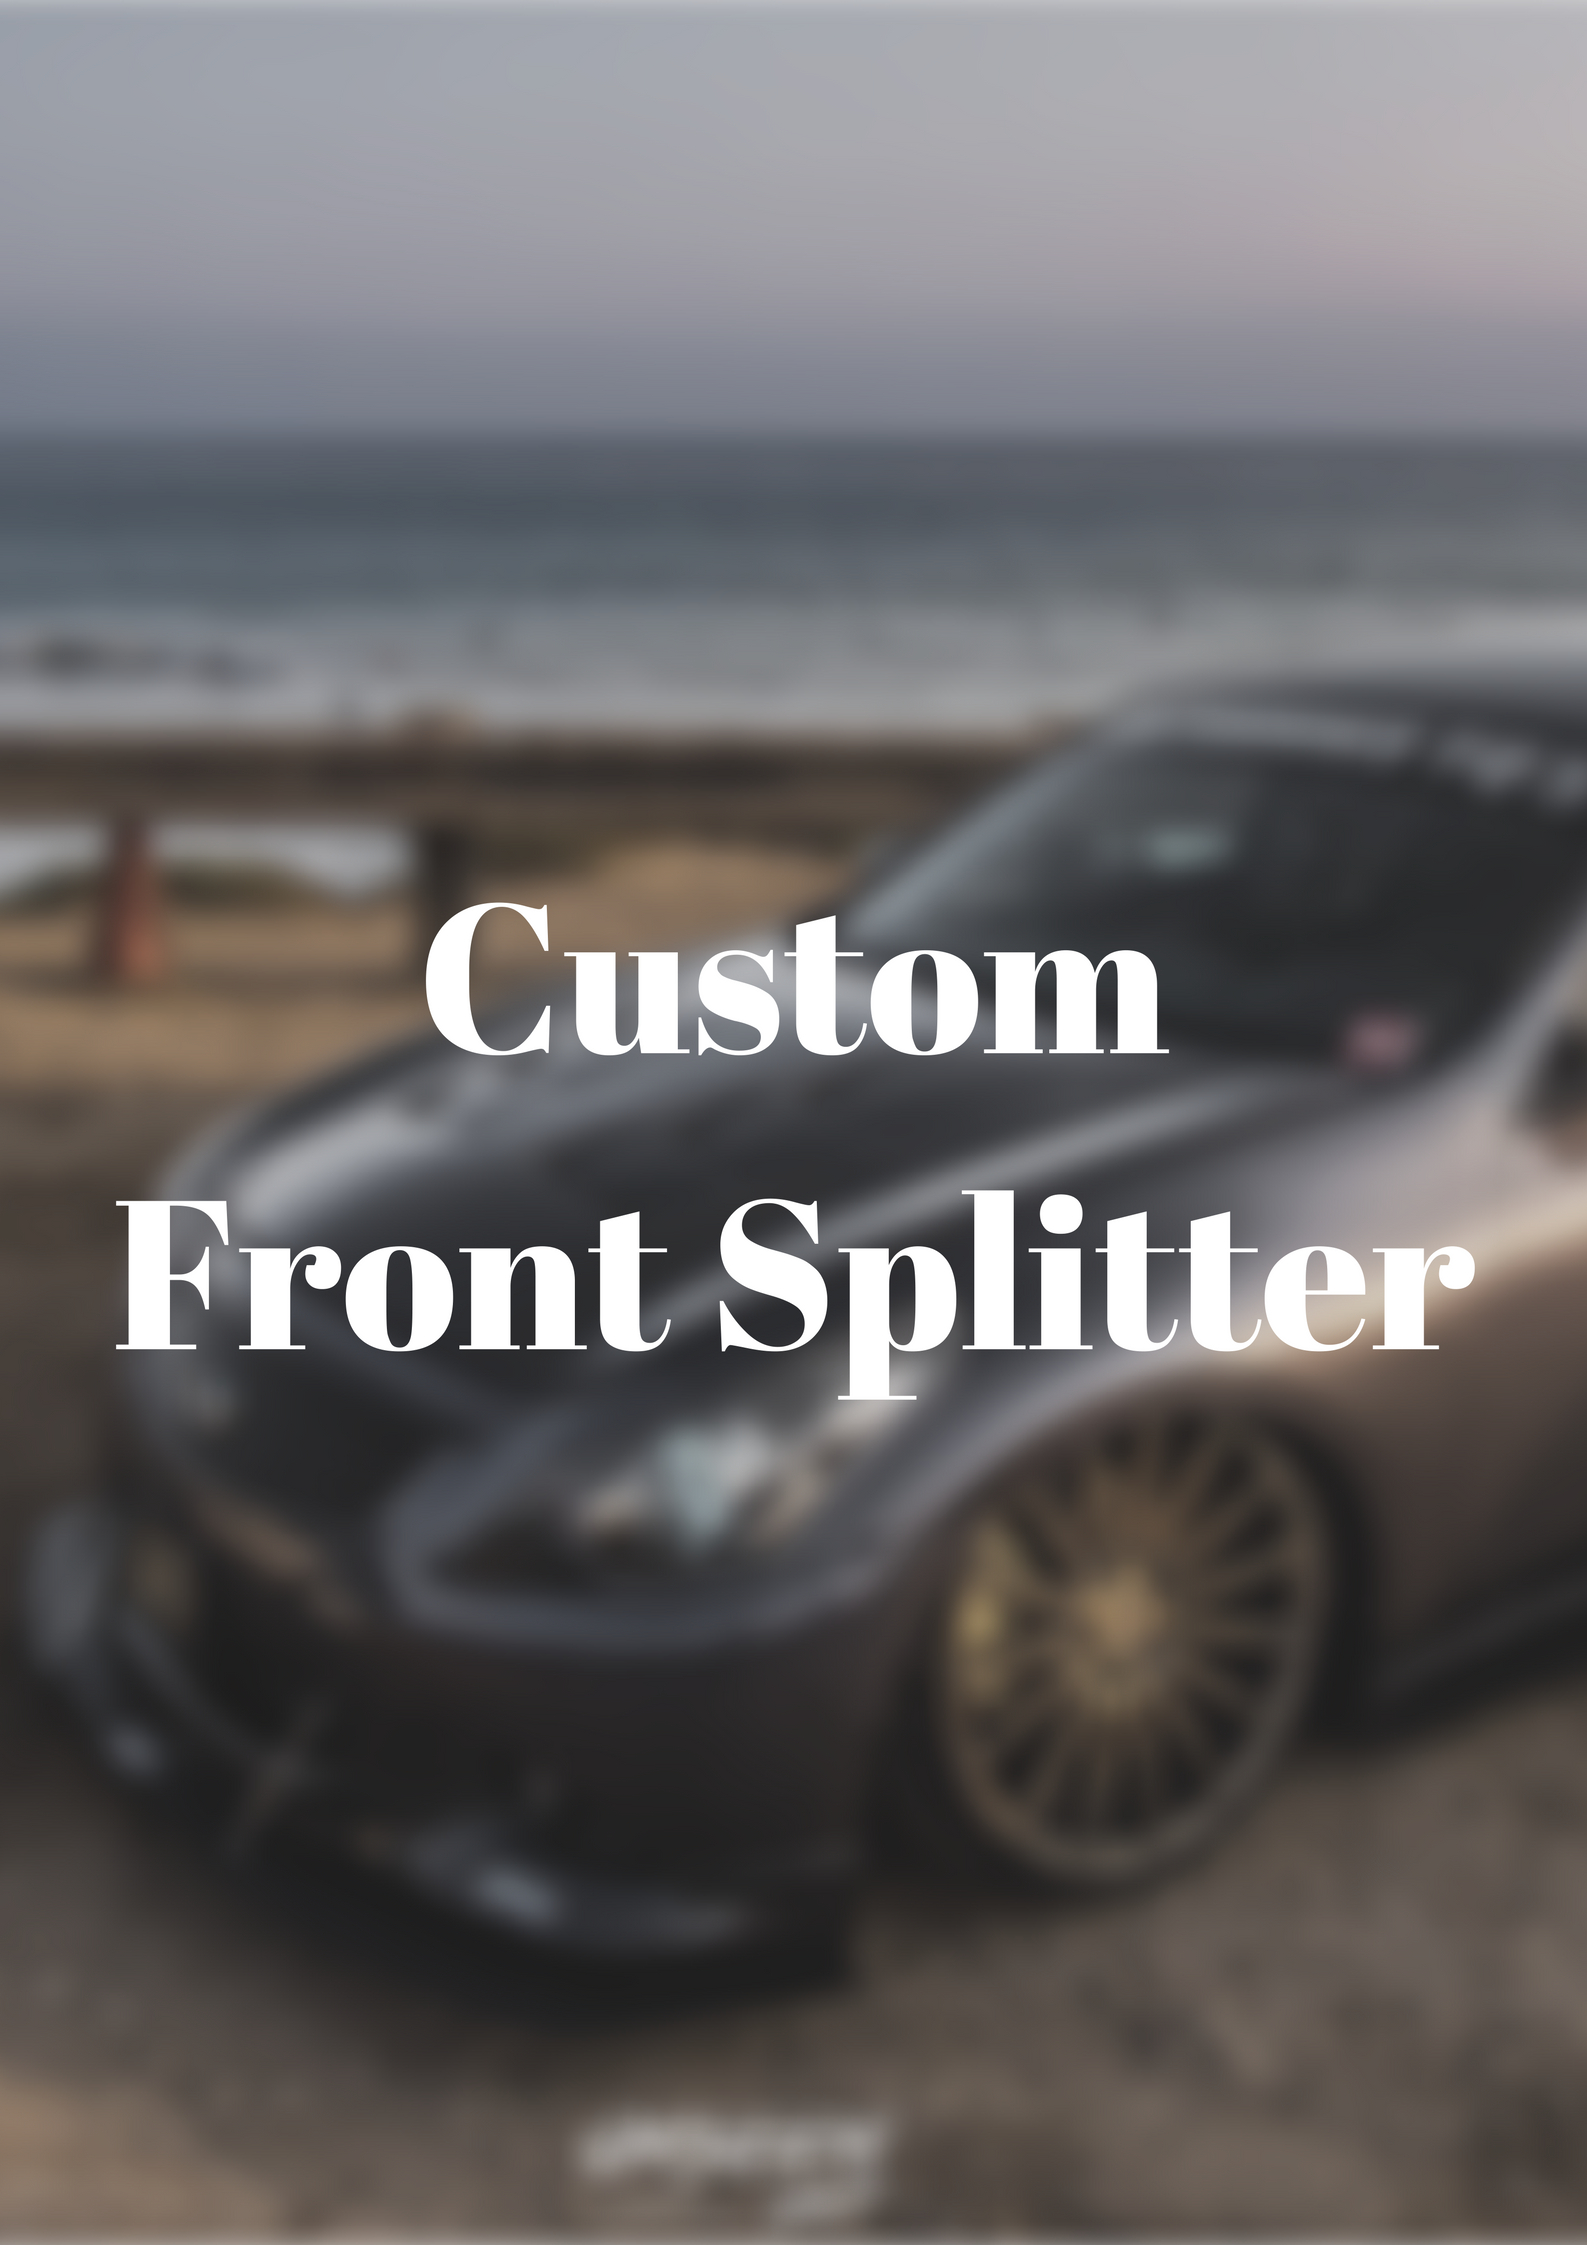 Custom Front Splitter for any car